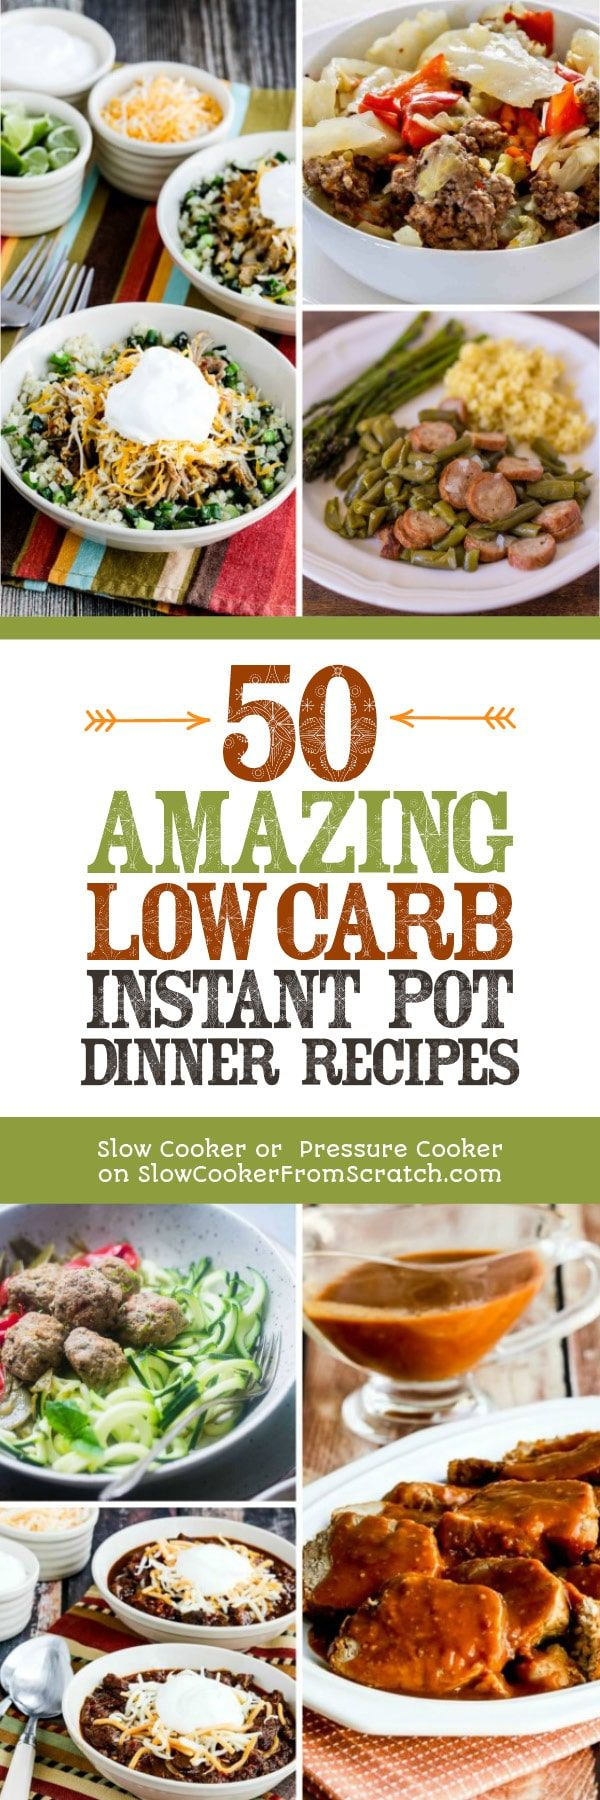 Her Low Carb Recipes Are AMAZING!